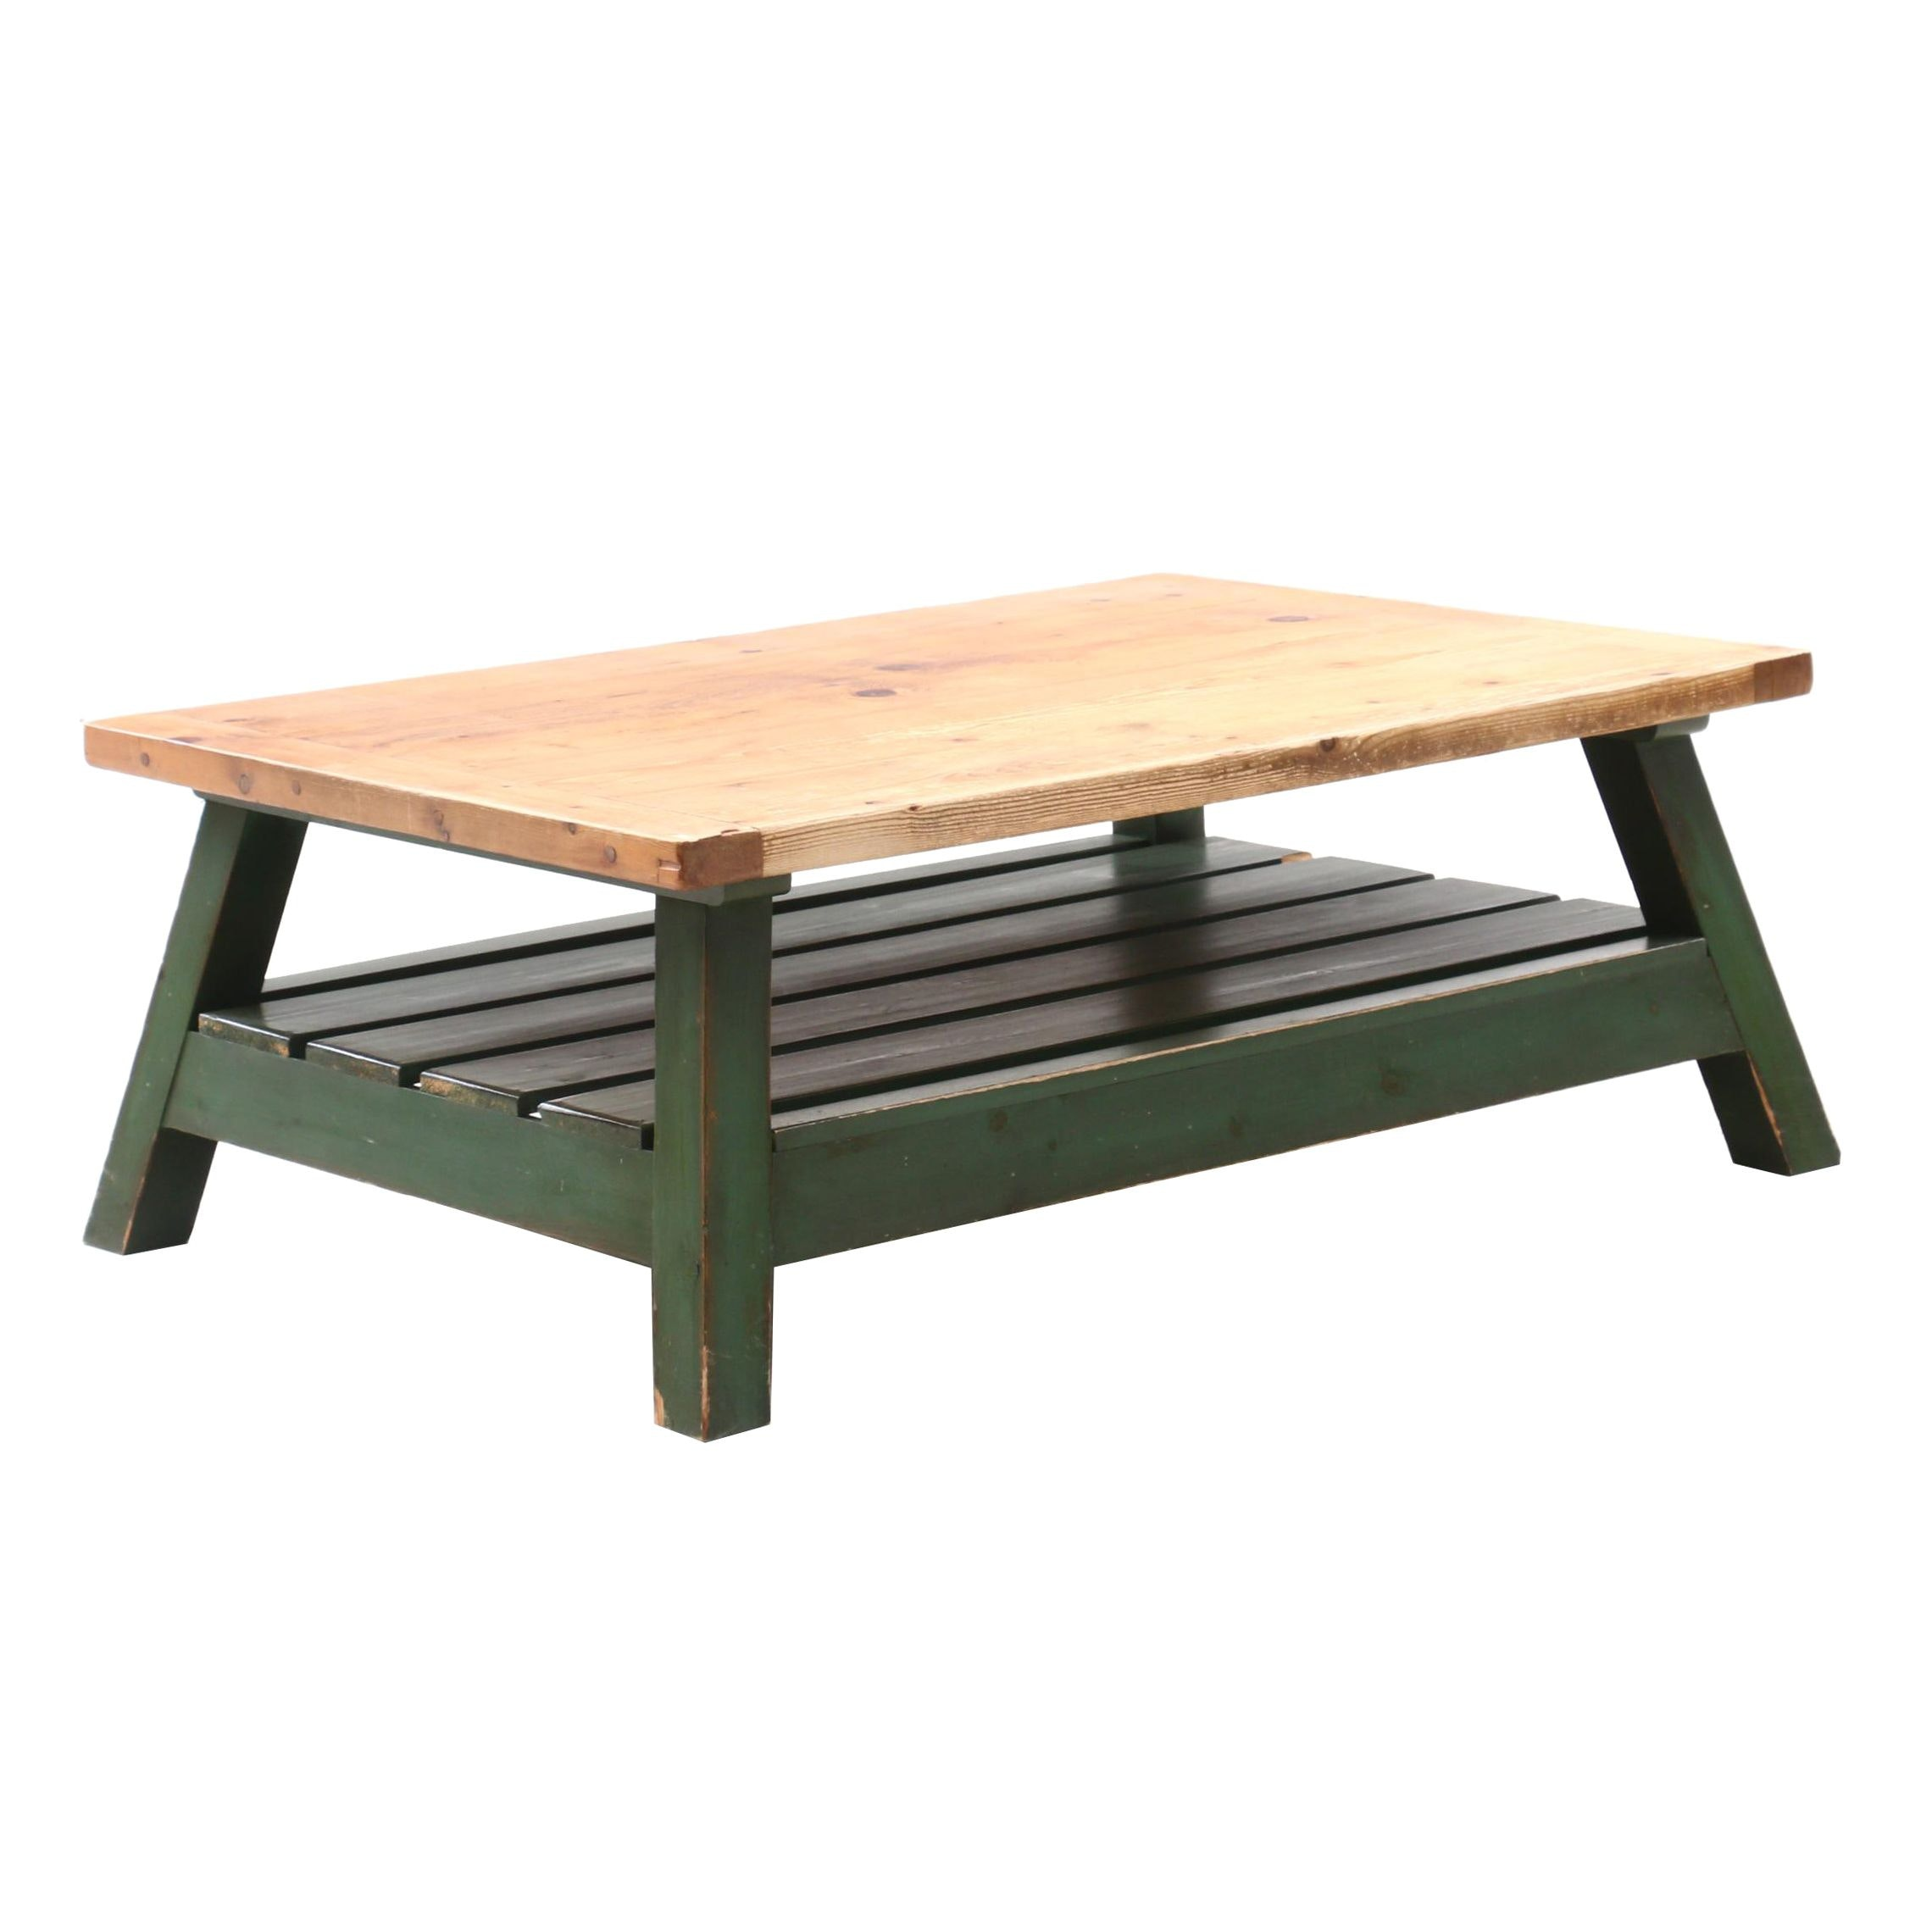 Rustic Style Pine and Painted Coffee Table From Arhaus Furniture